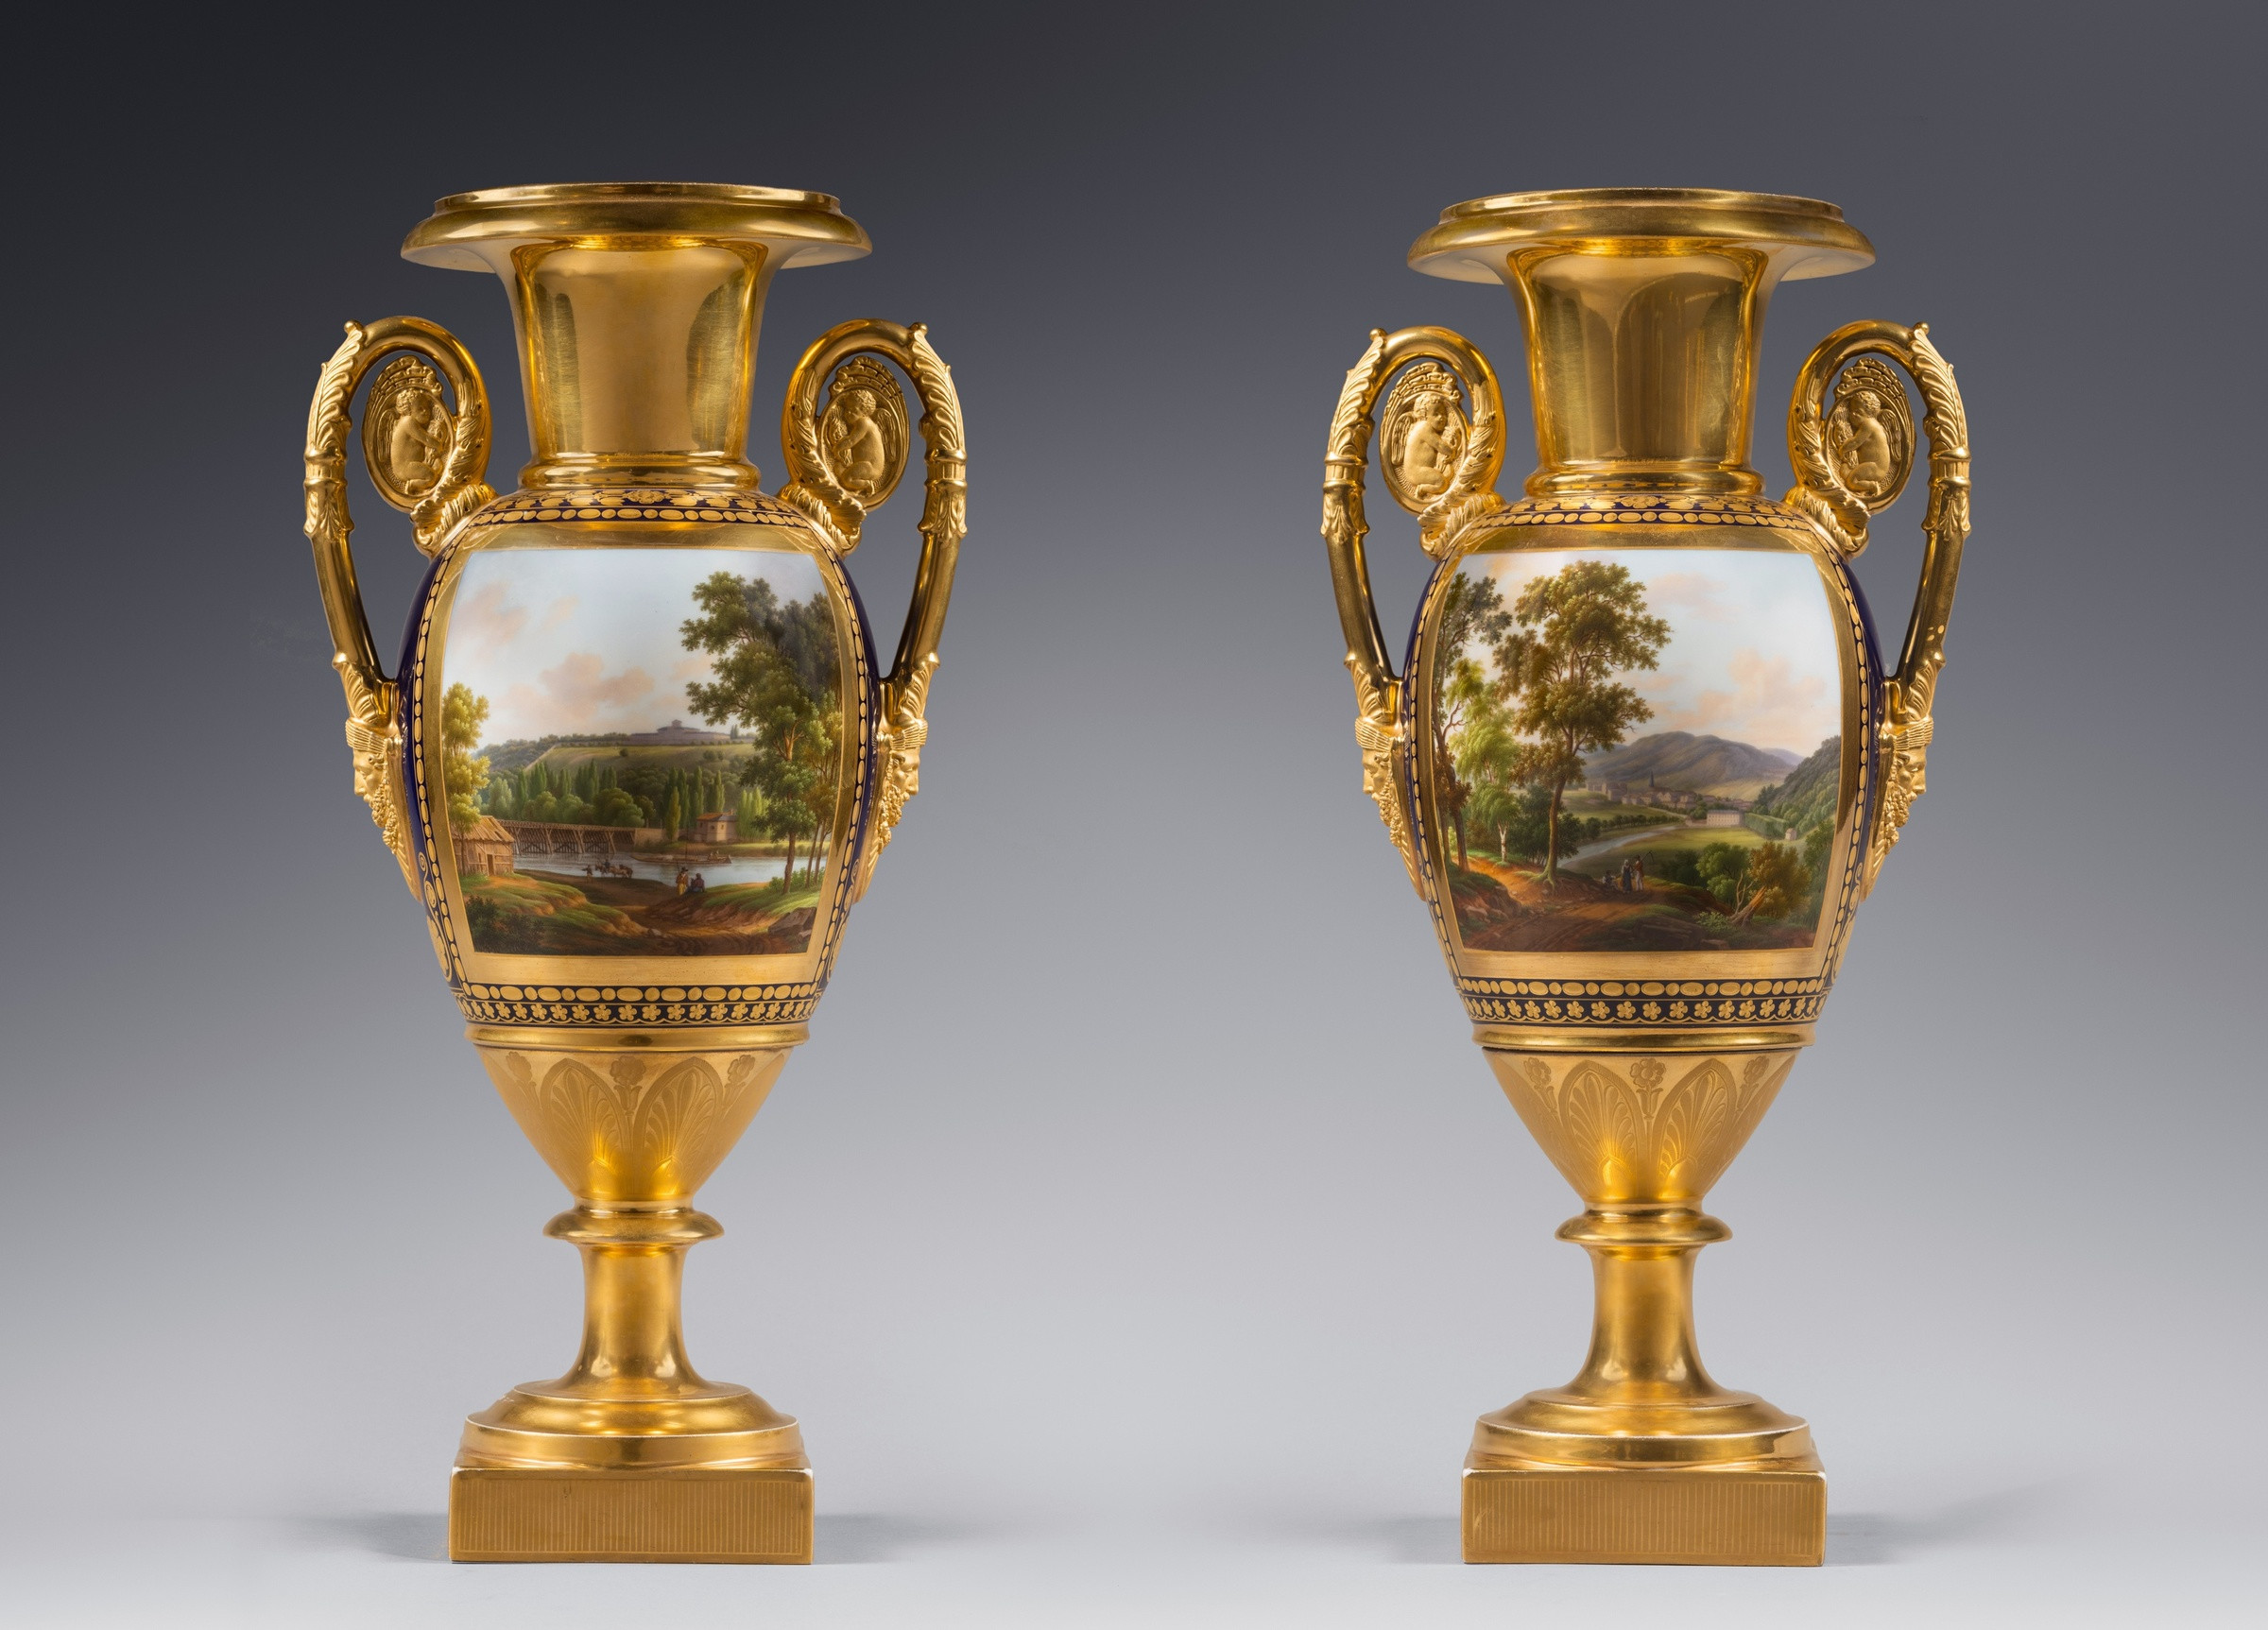 red wing vases antique of nast fra¨res manufactory attributed to a pair of restauration two within a pair of restauration two handled vases probably by nast fra¨res manufactory